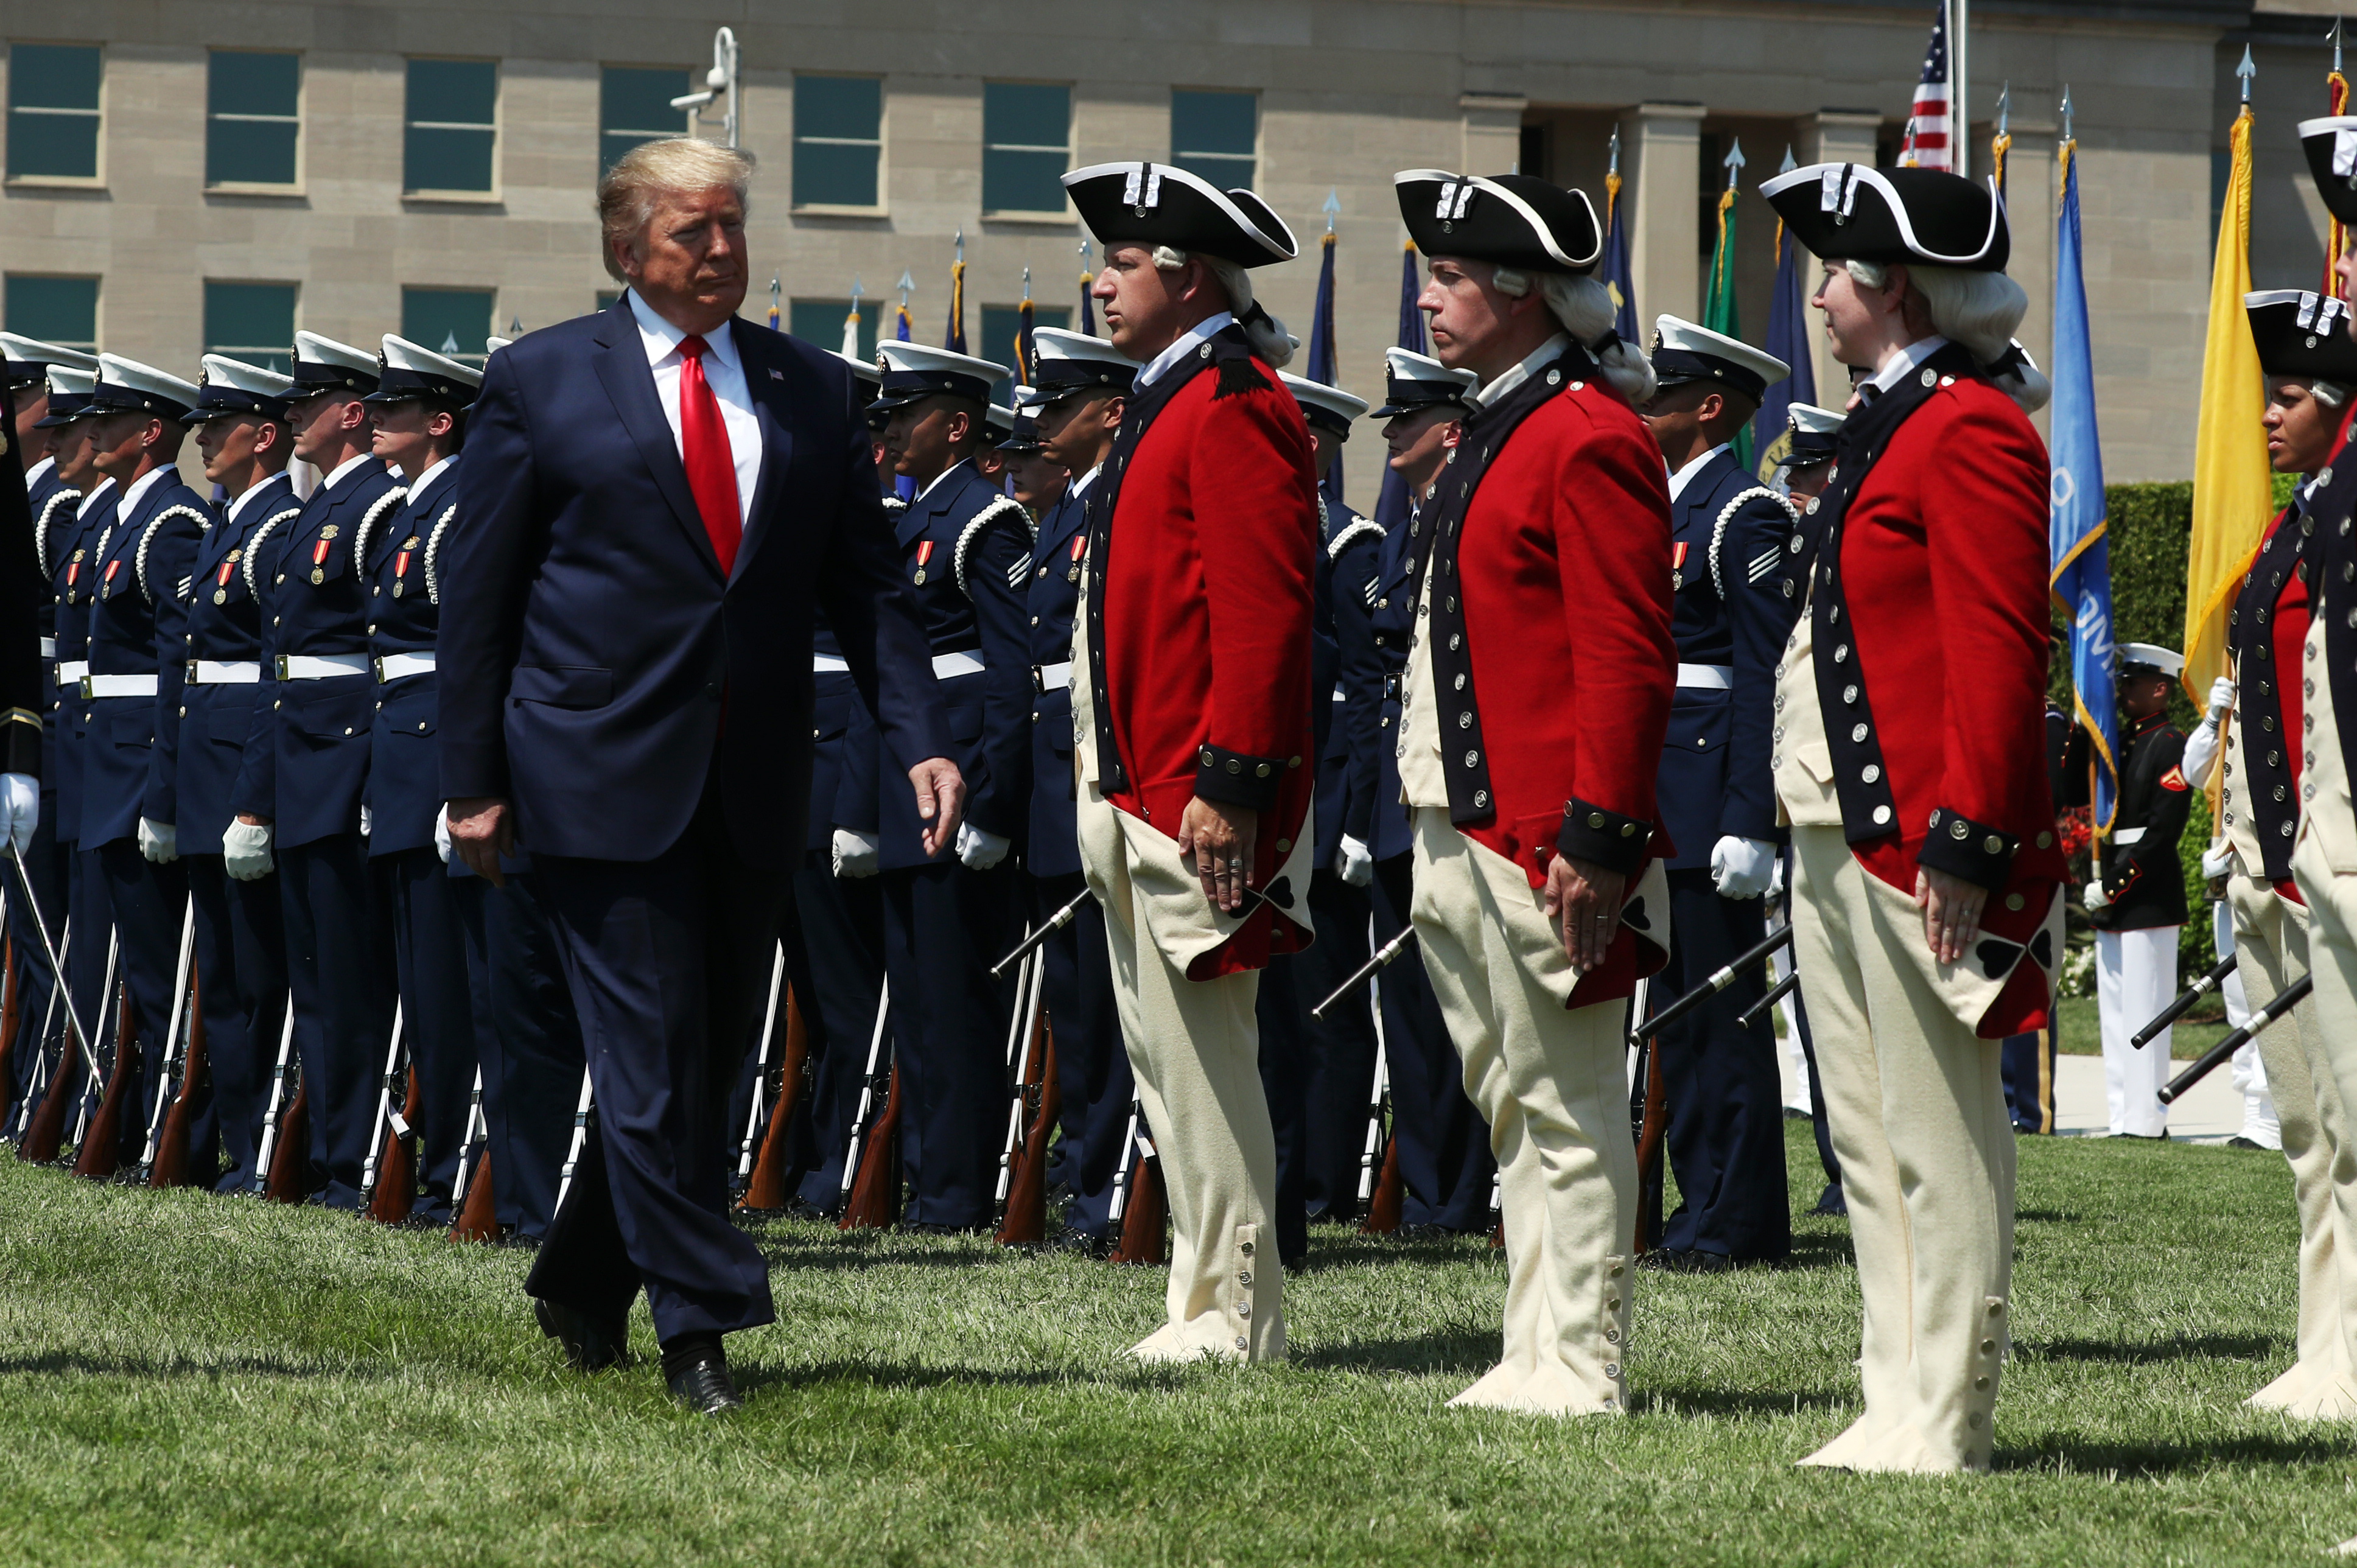 ARLINGTON, VA - JULY 25: U.S. President Donald Trump inspects the troops during a full honors welcome ceremony on the parade grounds at the Pentagon, on July 25, 2019 in Arlington, Virginia. Earlier this week Esper was sworn in as the 27th Secretary of Defense. (Photo by Mark Wilson/Getty Images)